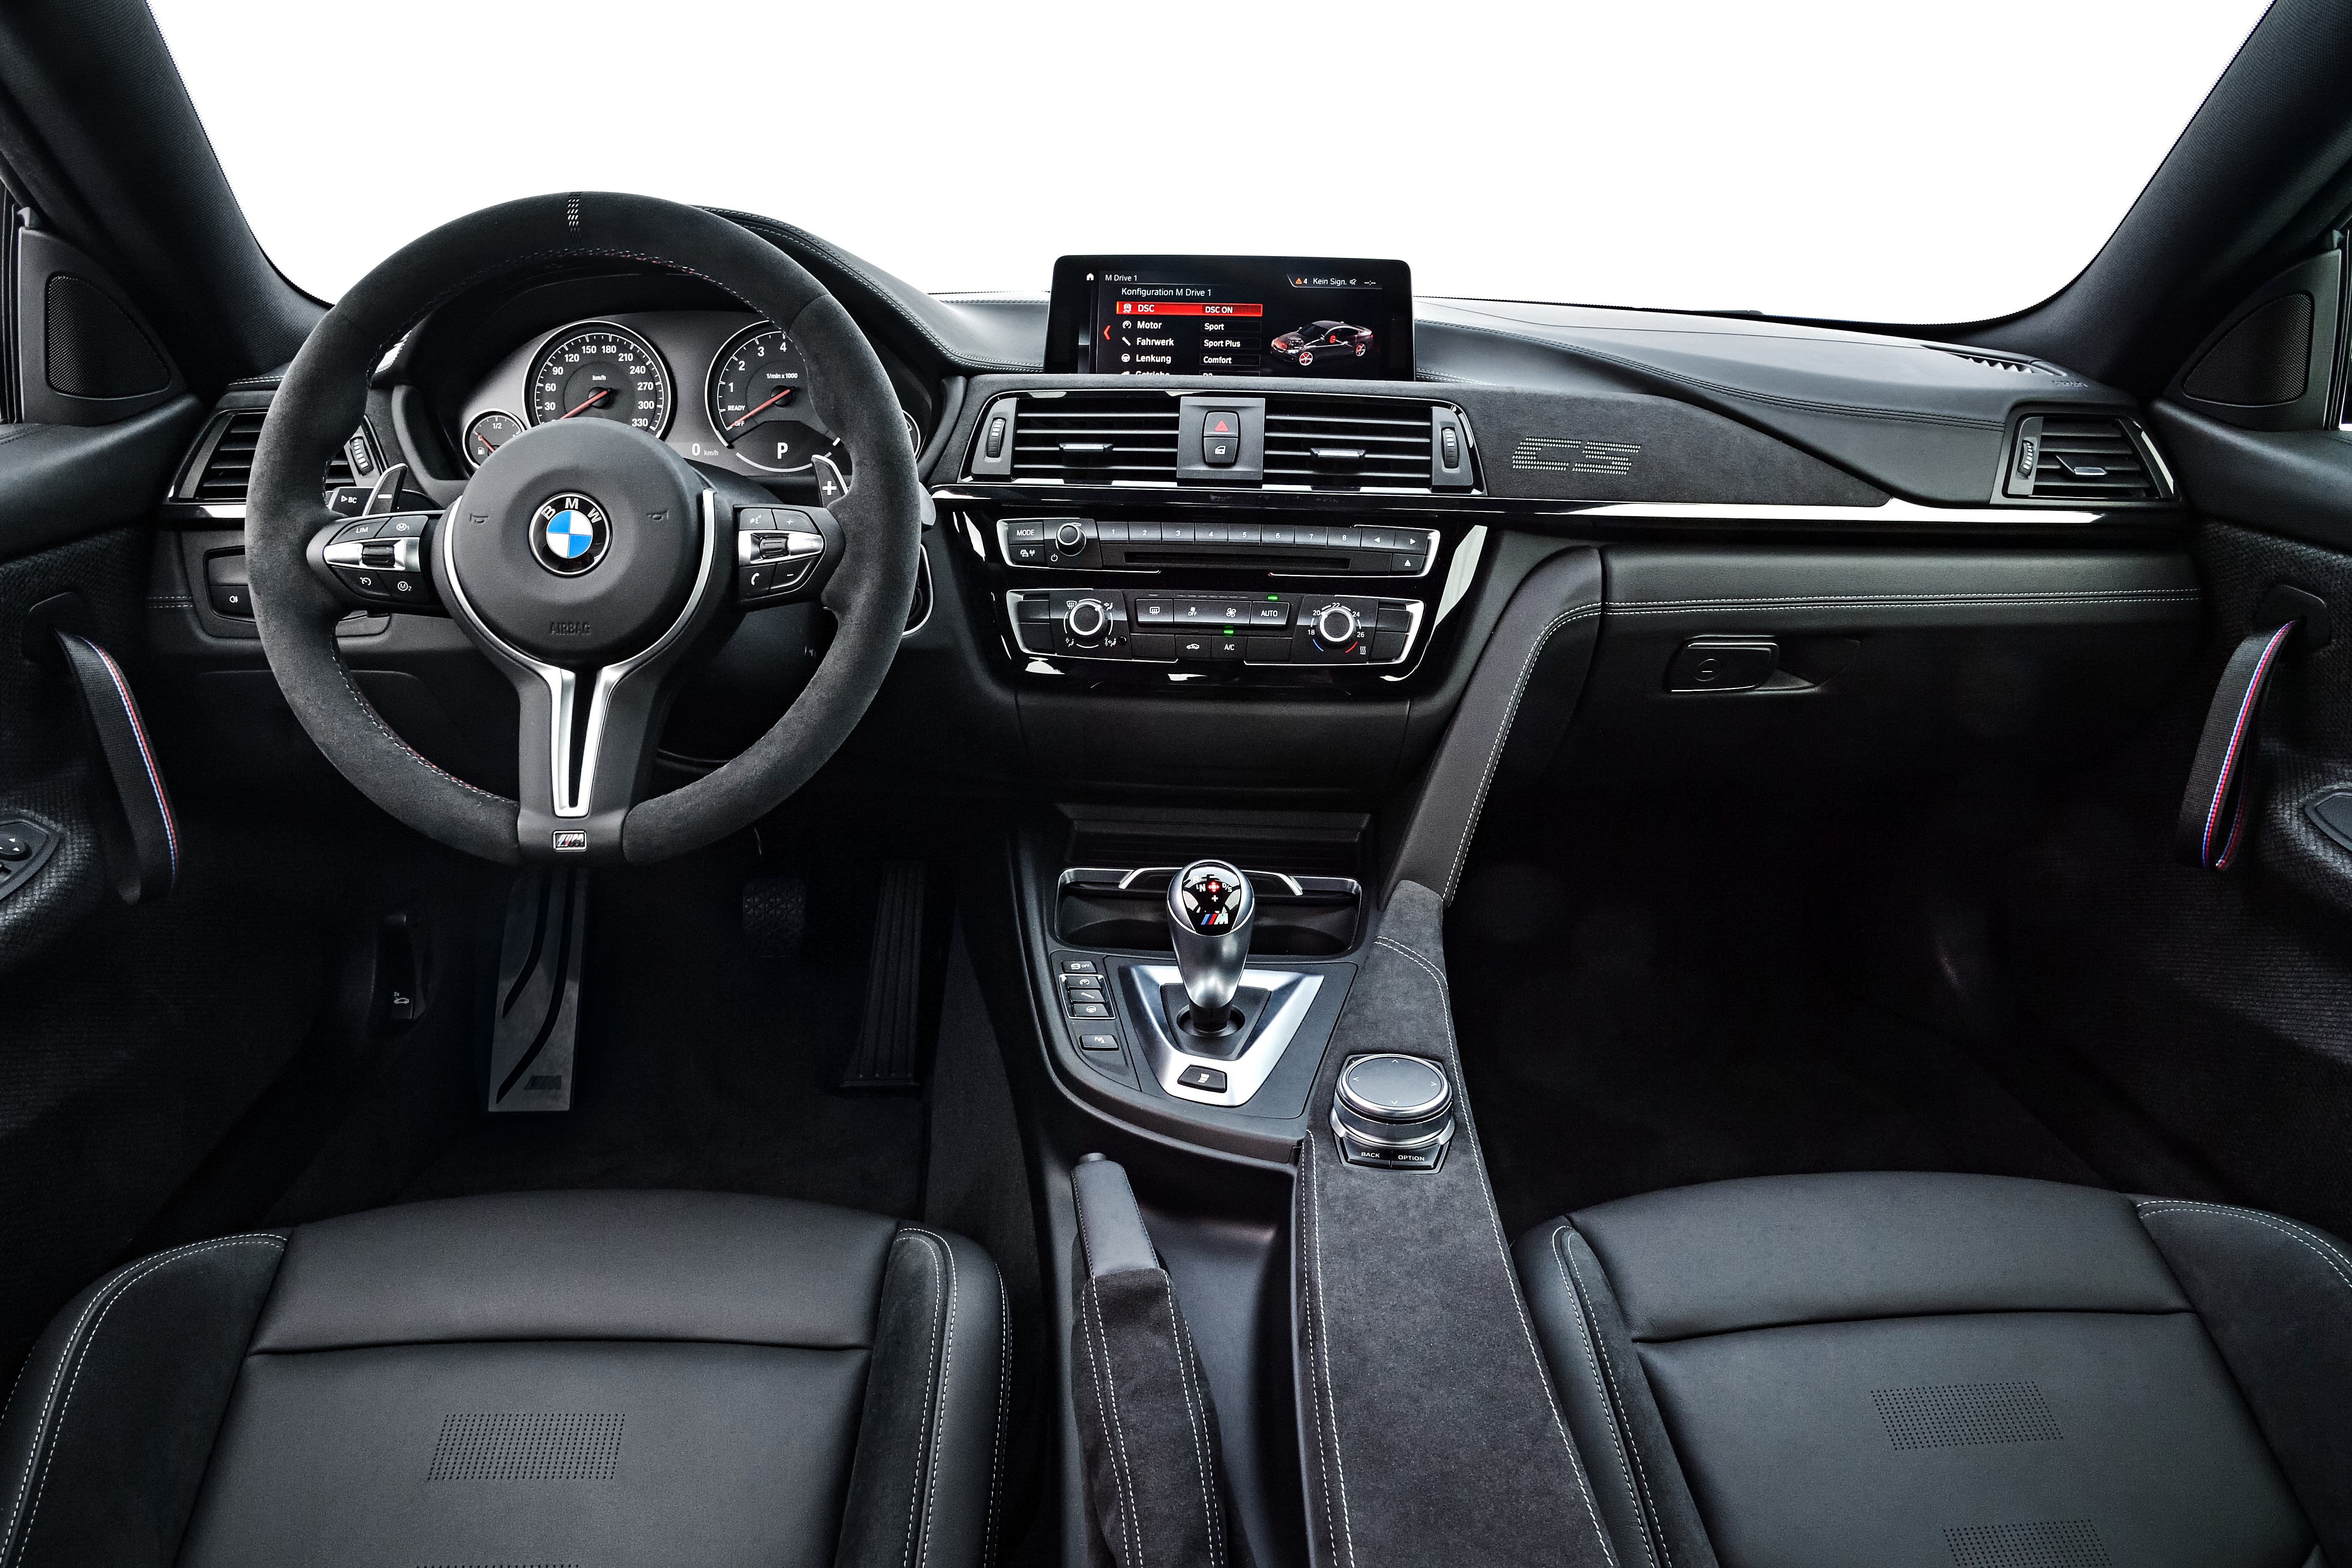 Bmw X3 2017 Interior >> BMW M4 CS revealed with 460 hp, M4 GTS styling Paul Tan - Image 647803